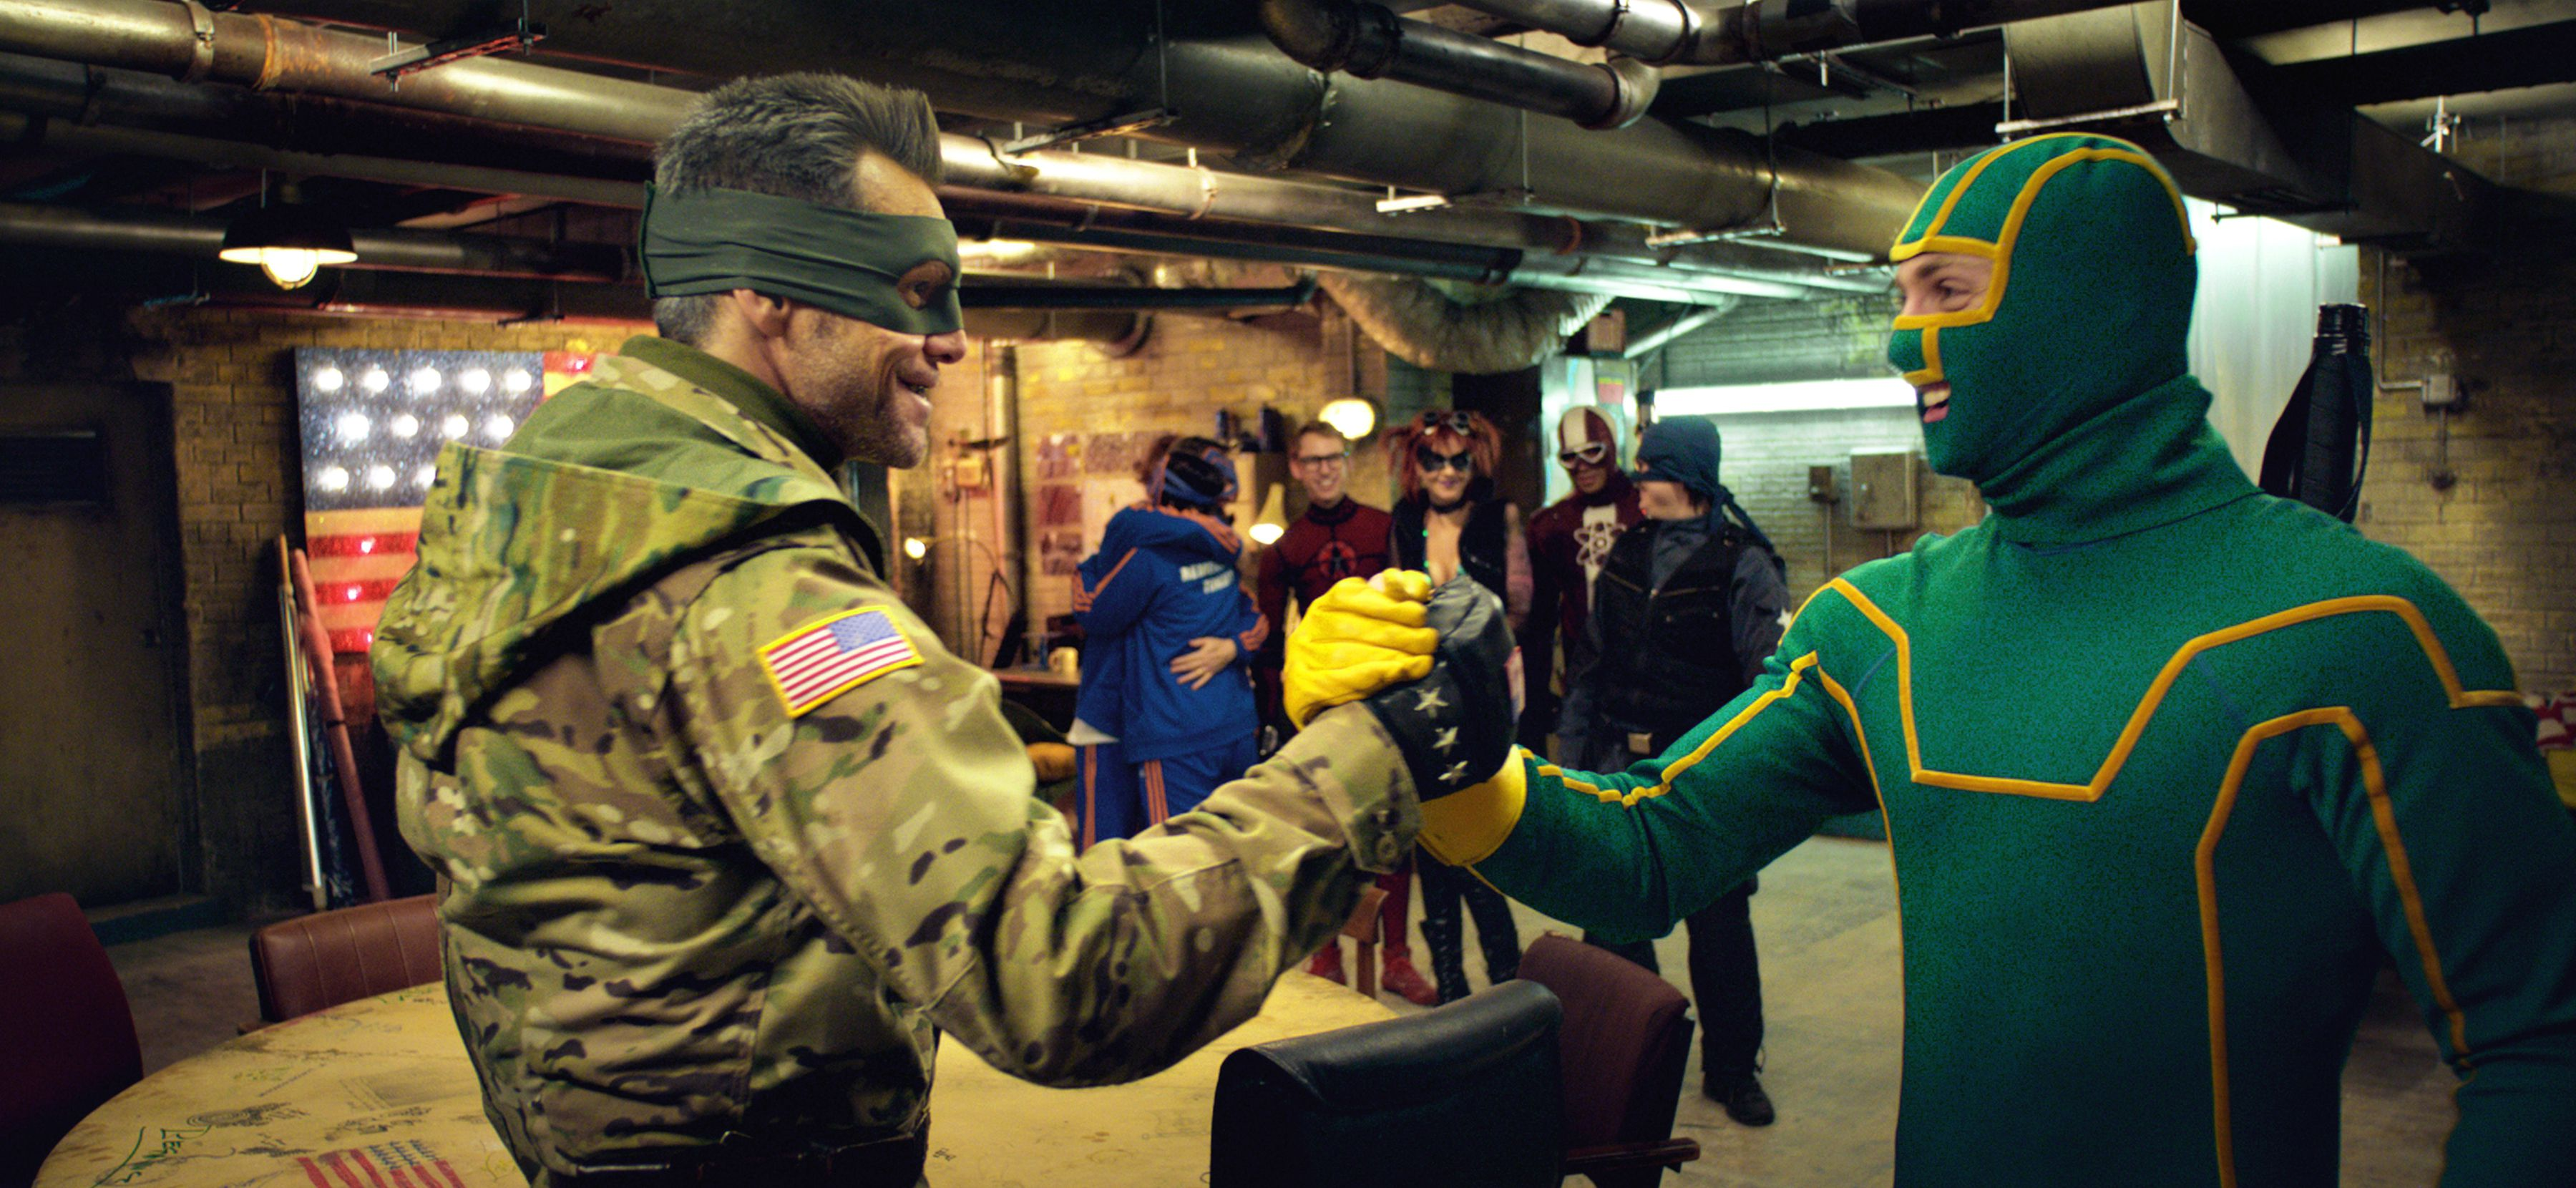 An image from Kick-Ass 2